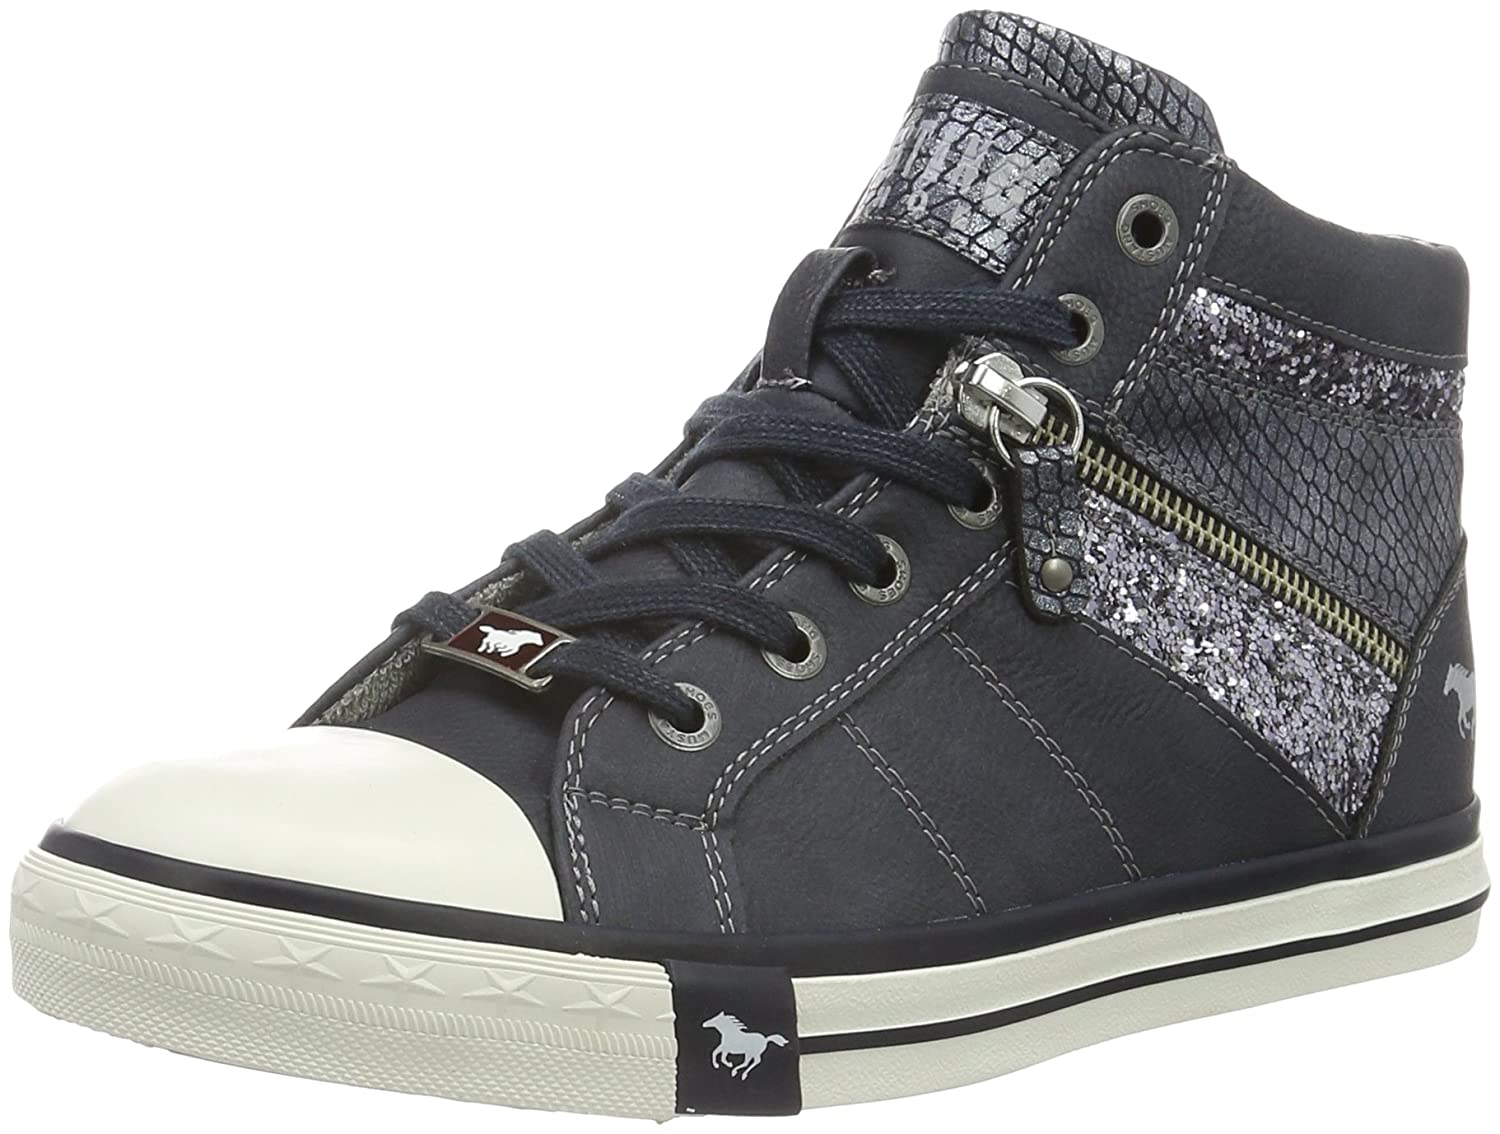 Mustang Damen Navy) 1146-508-820 High-Top Blau (820 Navy) Damen 66edaf